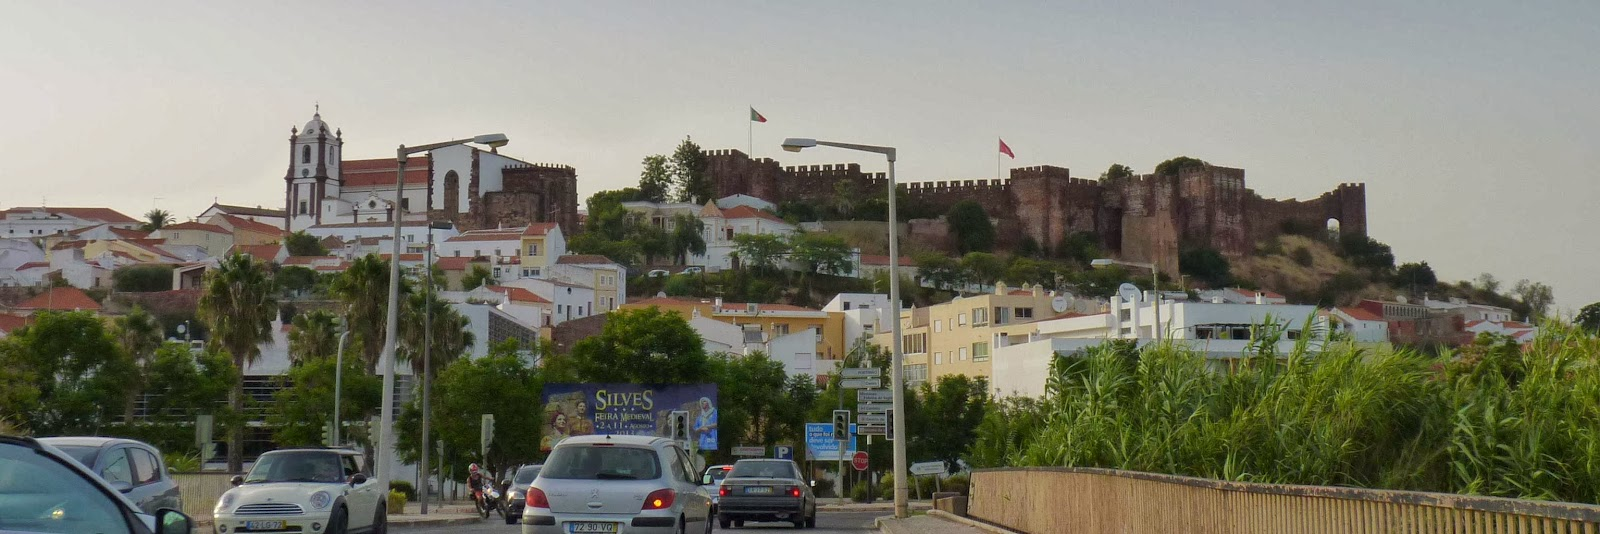 Castillo y Catedral de Silves.